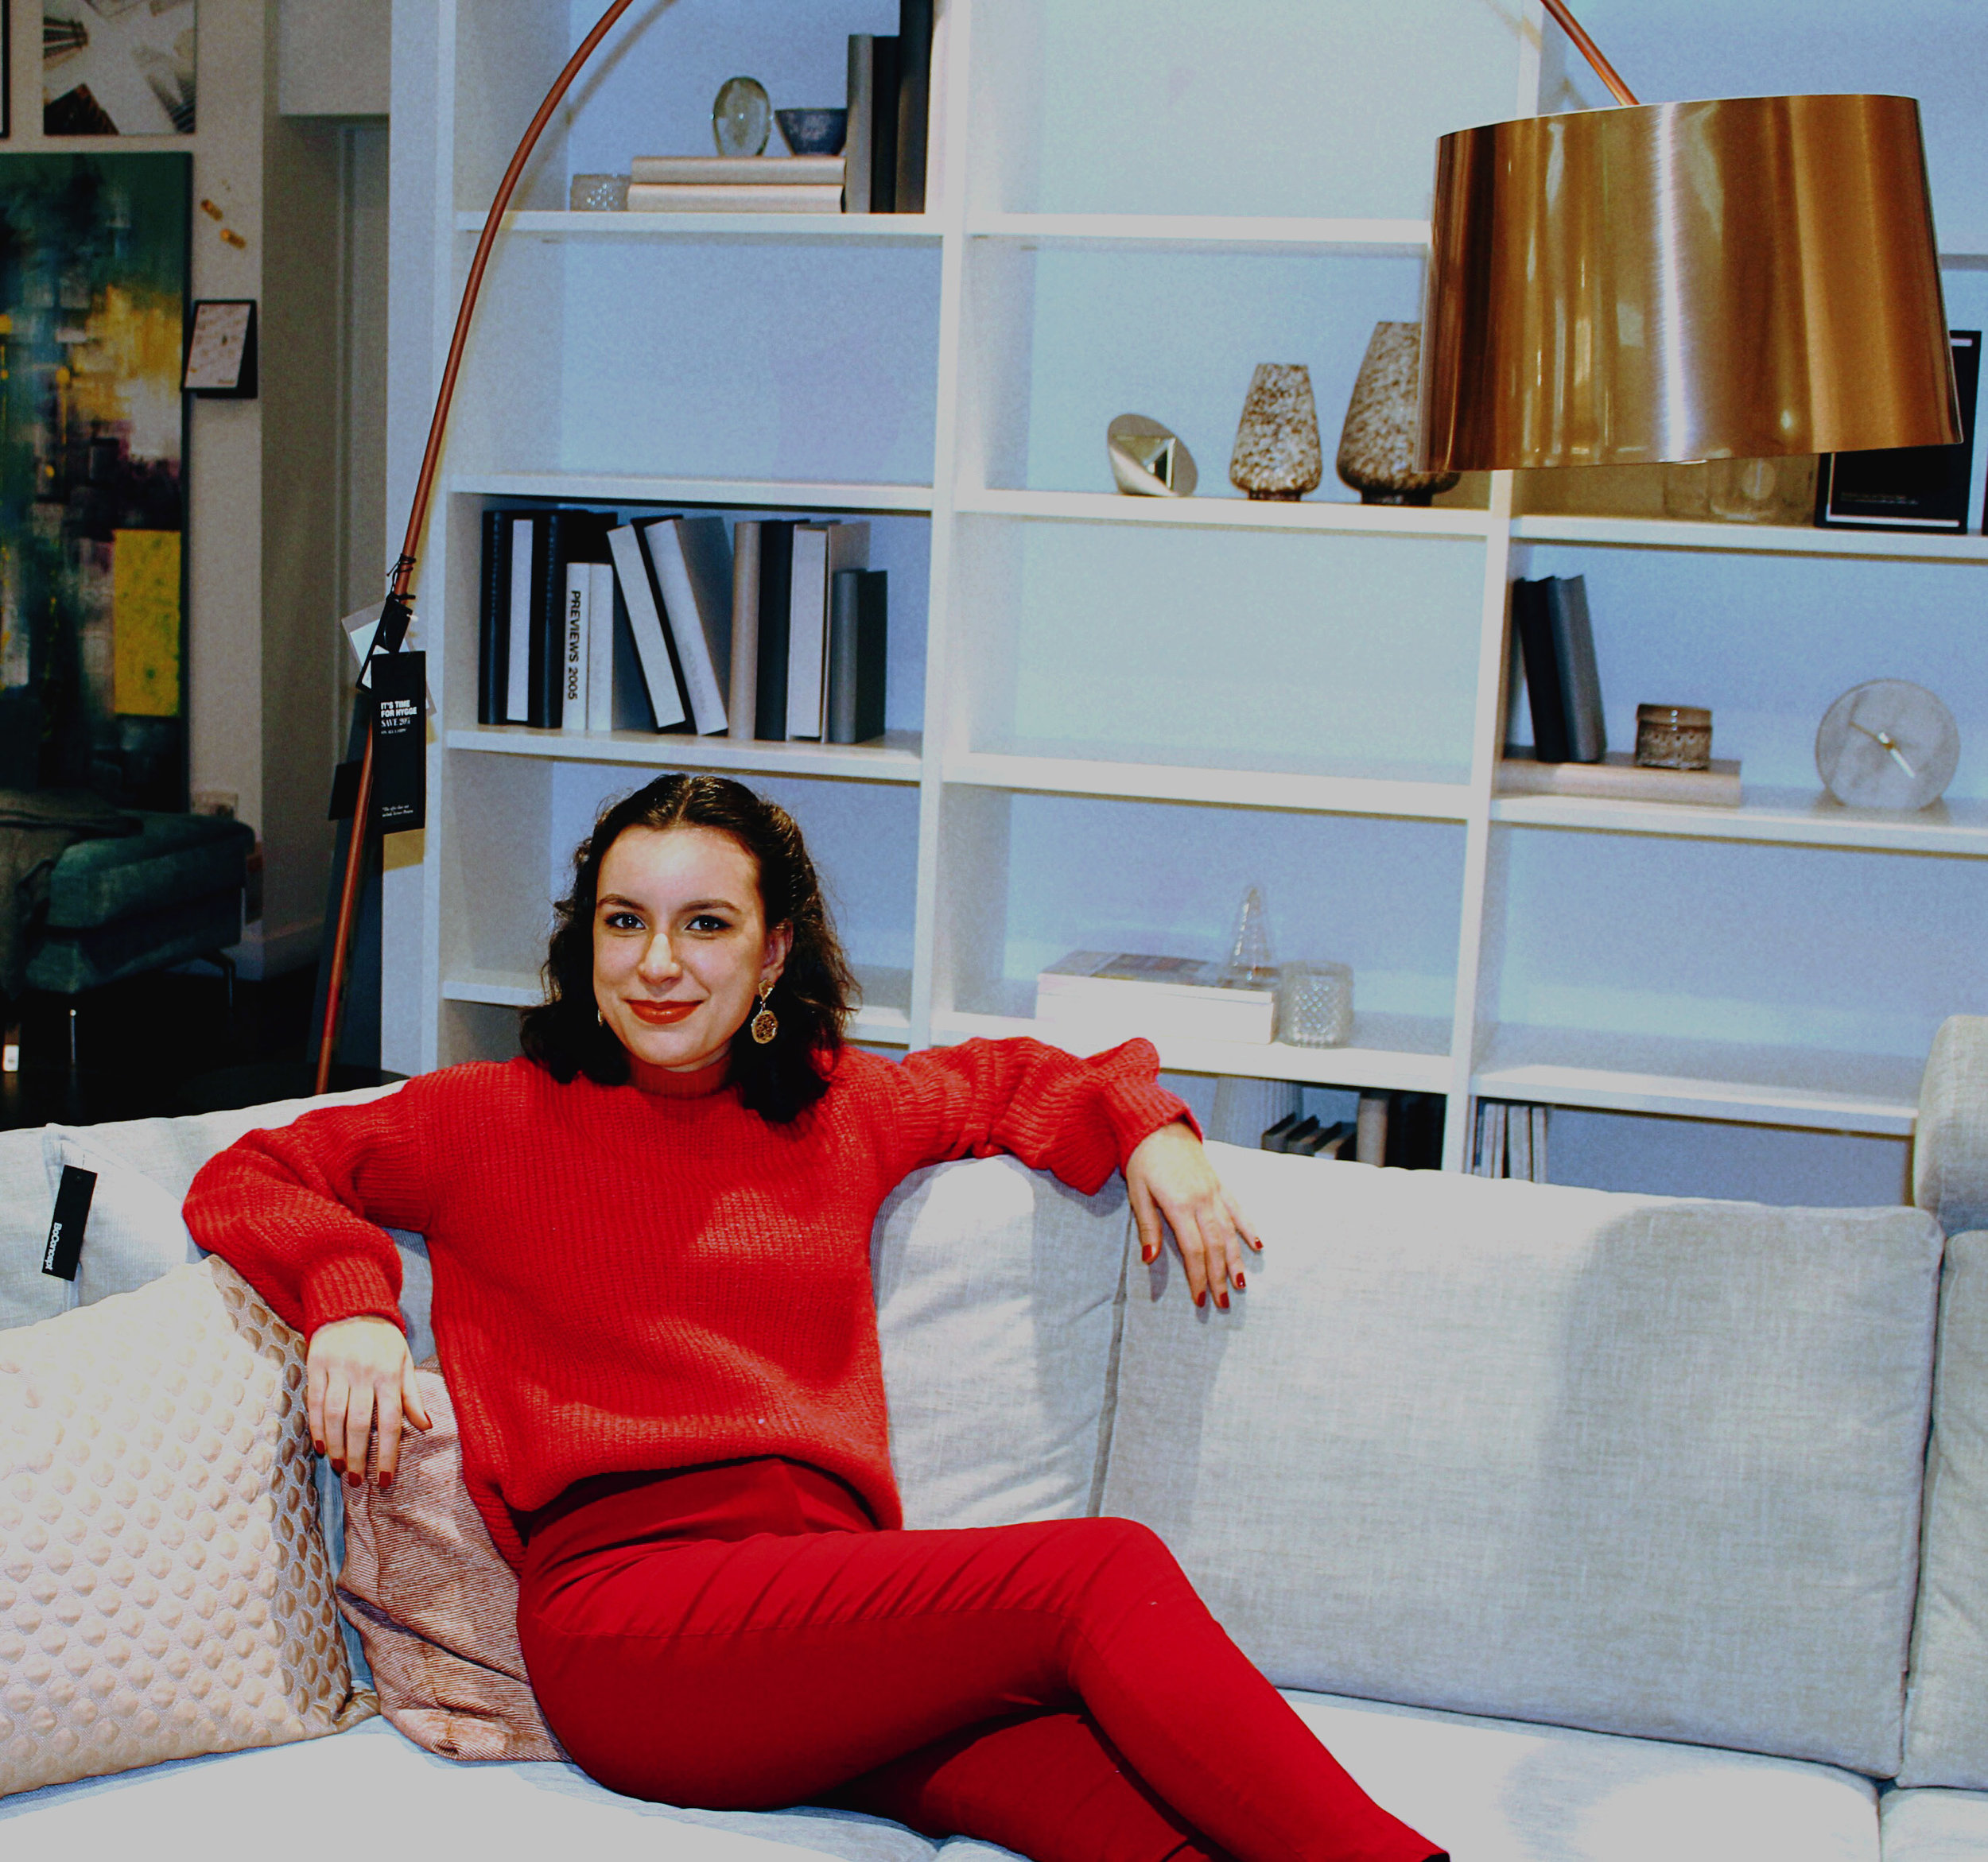 Red Fashion Union Jumper Asos High Waisted Trousers Rhoyally Chic UK style blogger